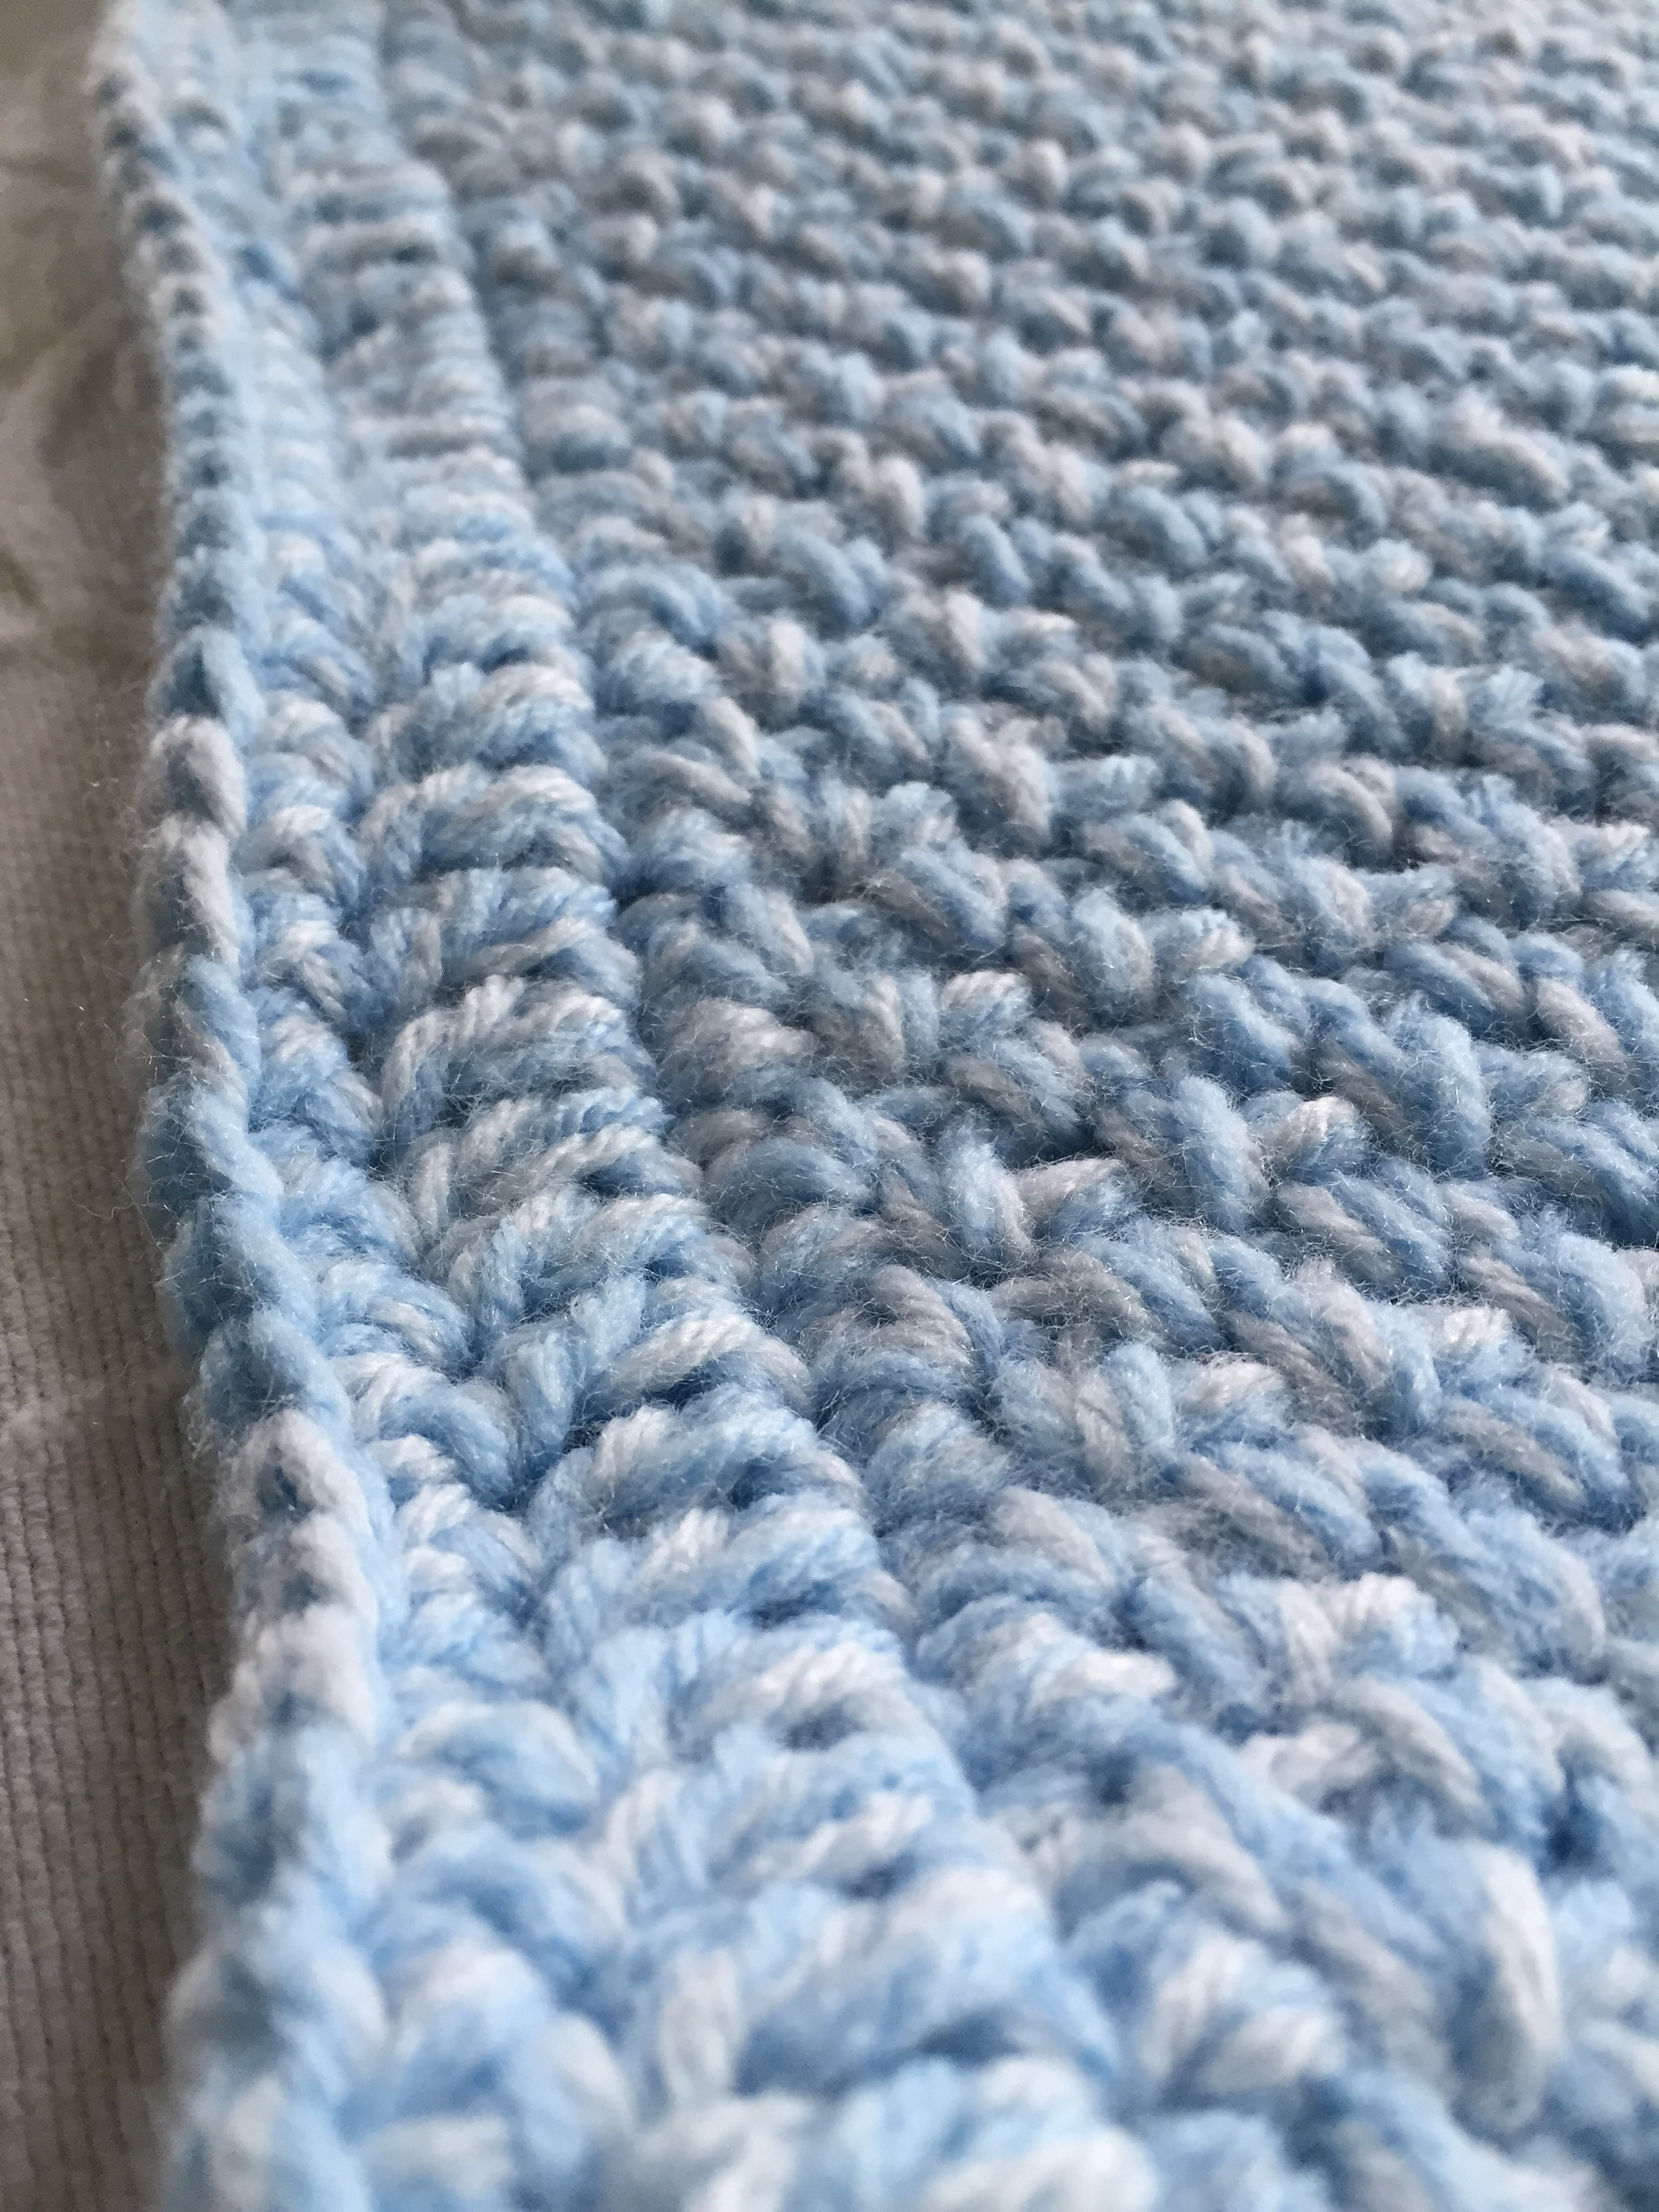 Knitting Needles No : Baby blanket no needle knitting